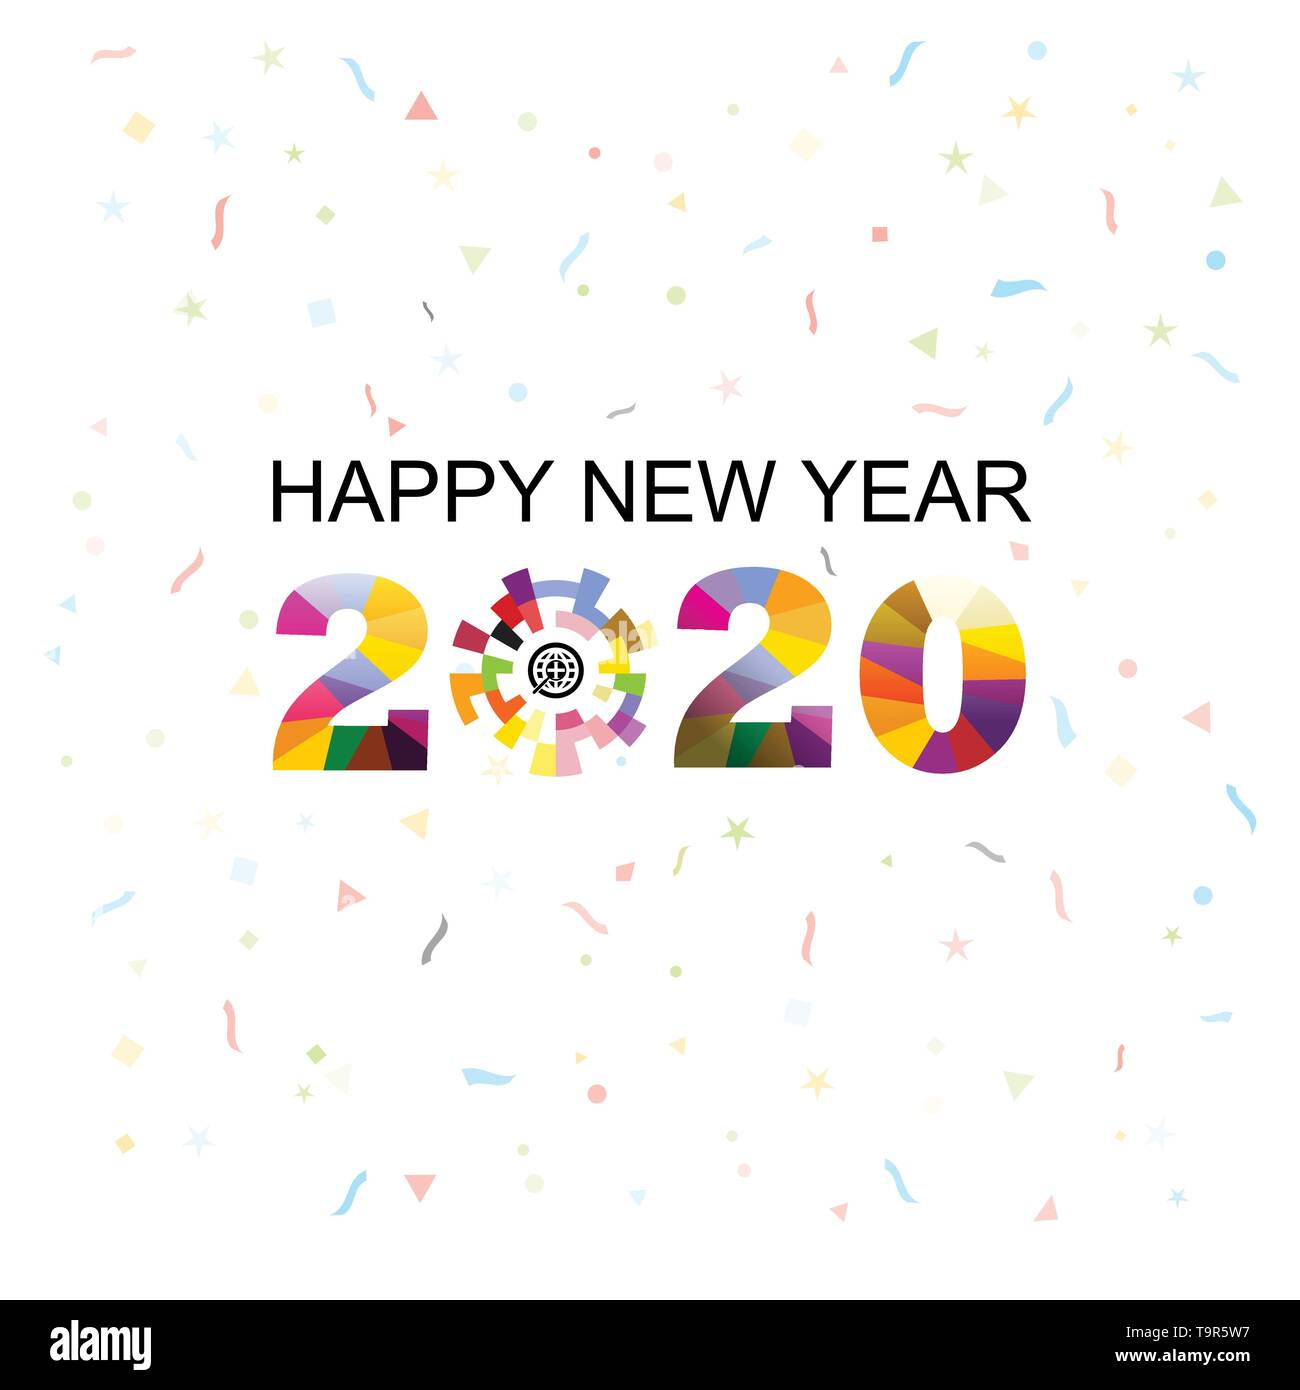 Happy New Year 2020 Background Colorful Greeting Card Design